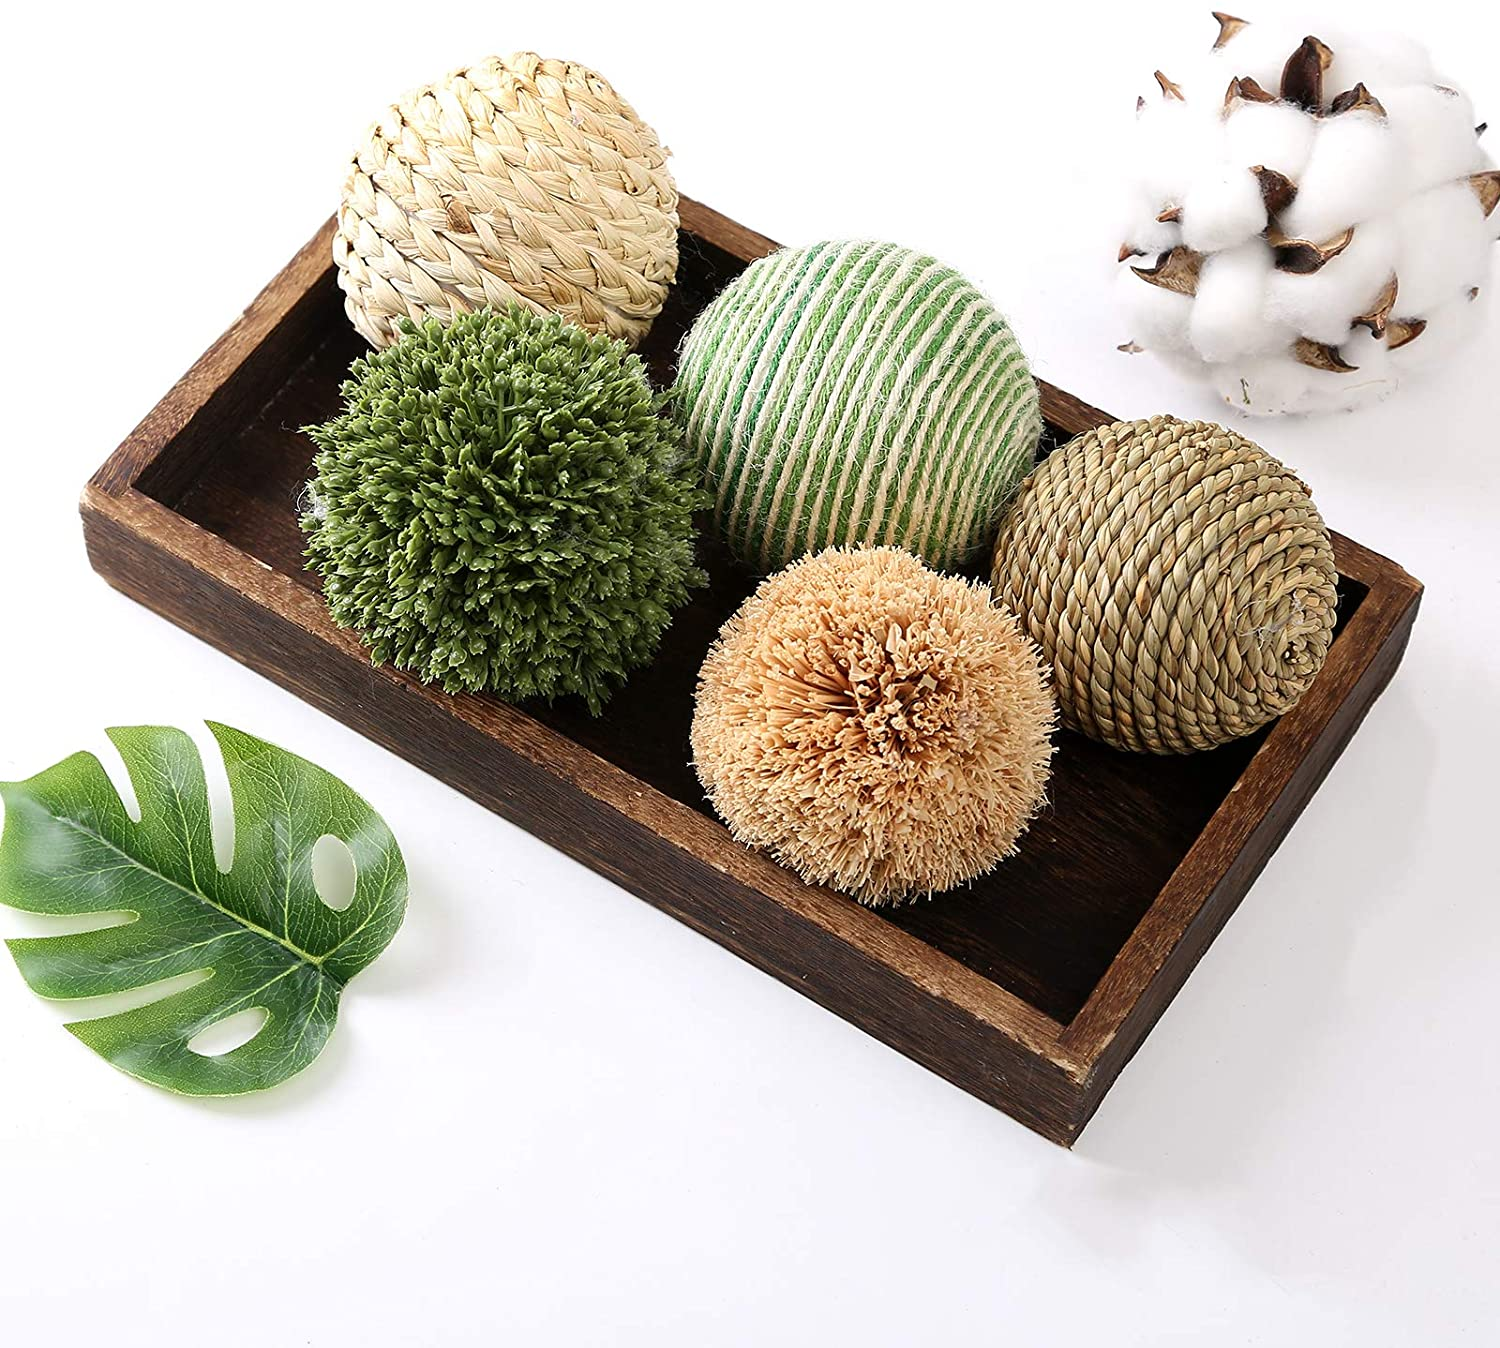 Ciroases 6pcs 3.5inch Woven Wicker Rattan Balls Decorative Ball Twig Orbs Green Orbs Vase Bowl Filler for Tabletop Decor …